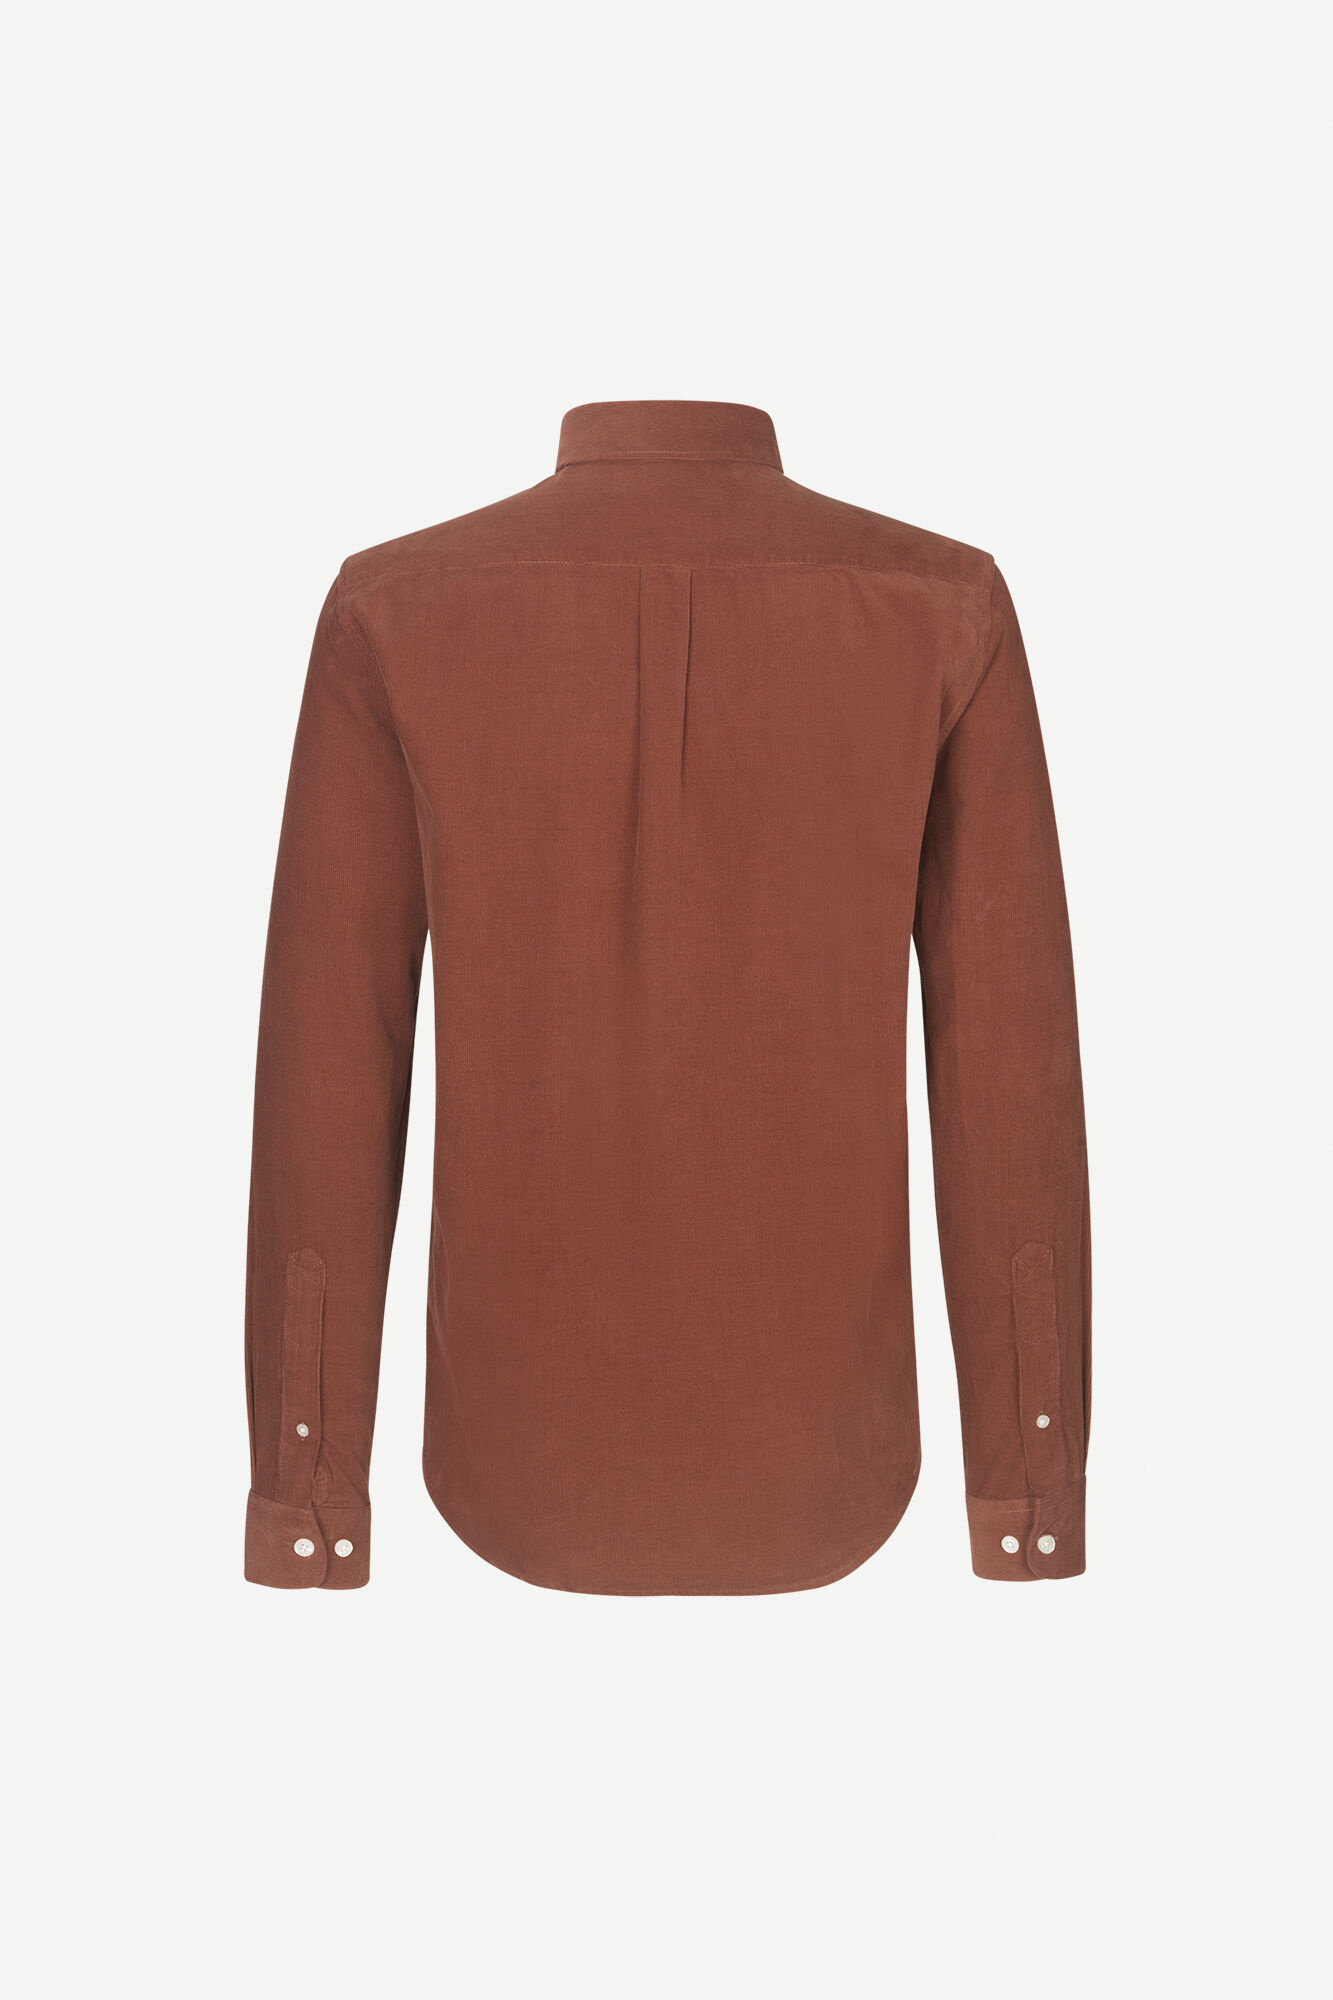 Liam BX Shirt Cinnamon Brown Corduroy 10504-2